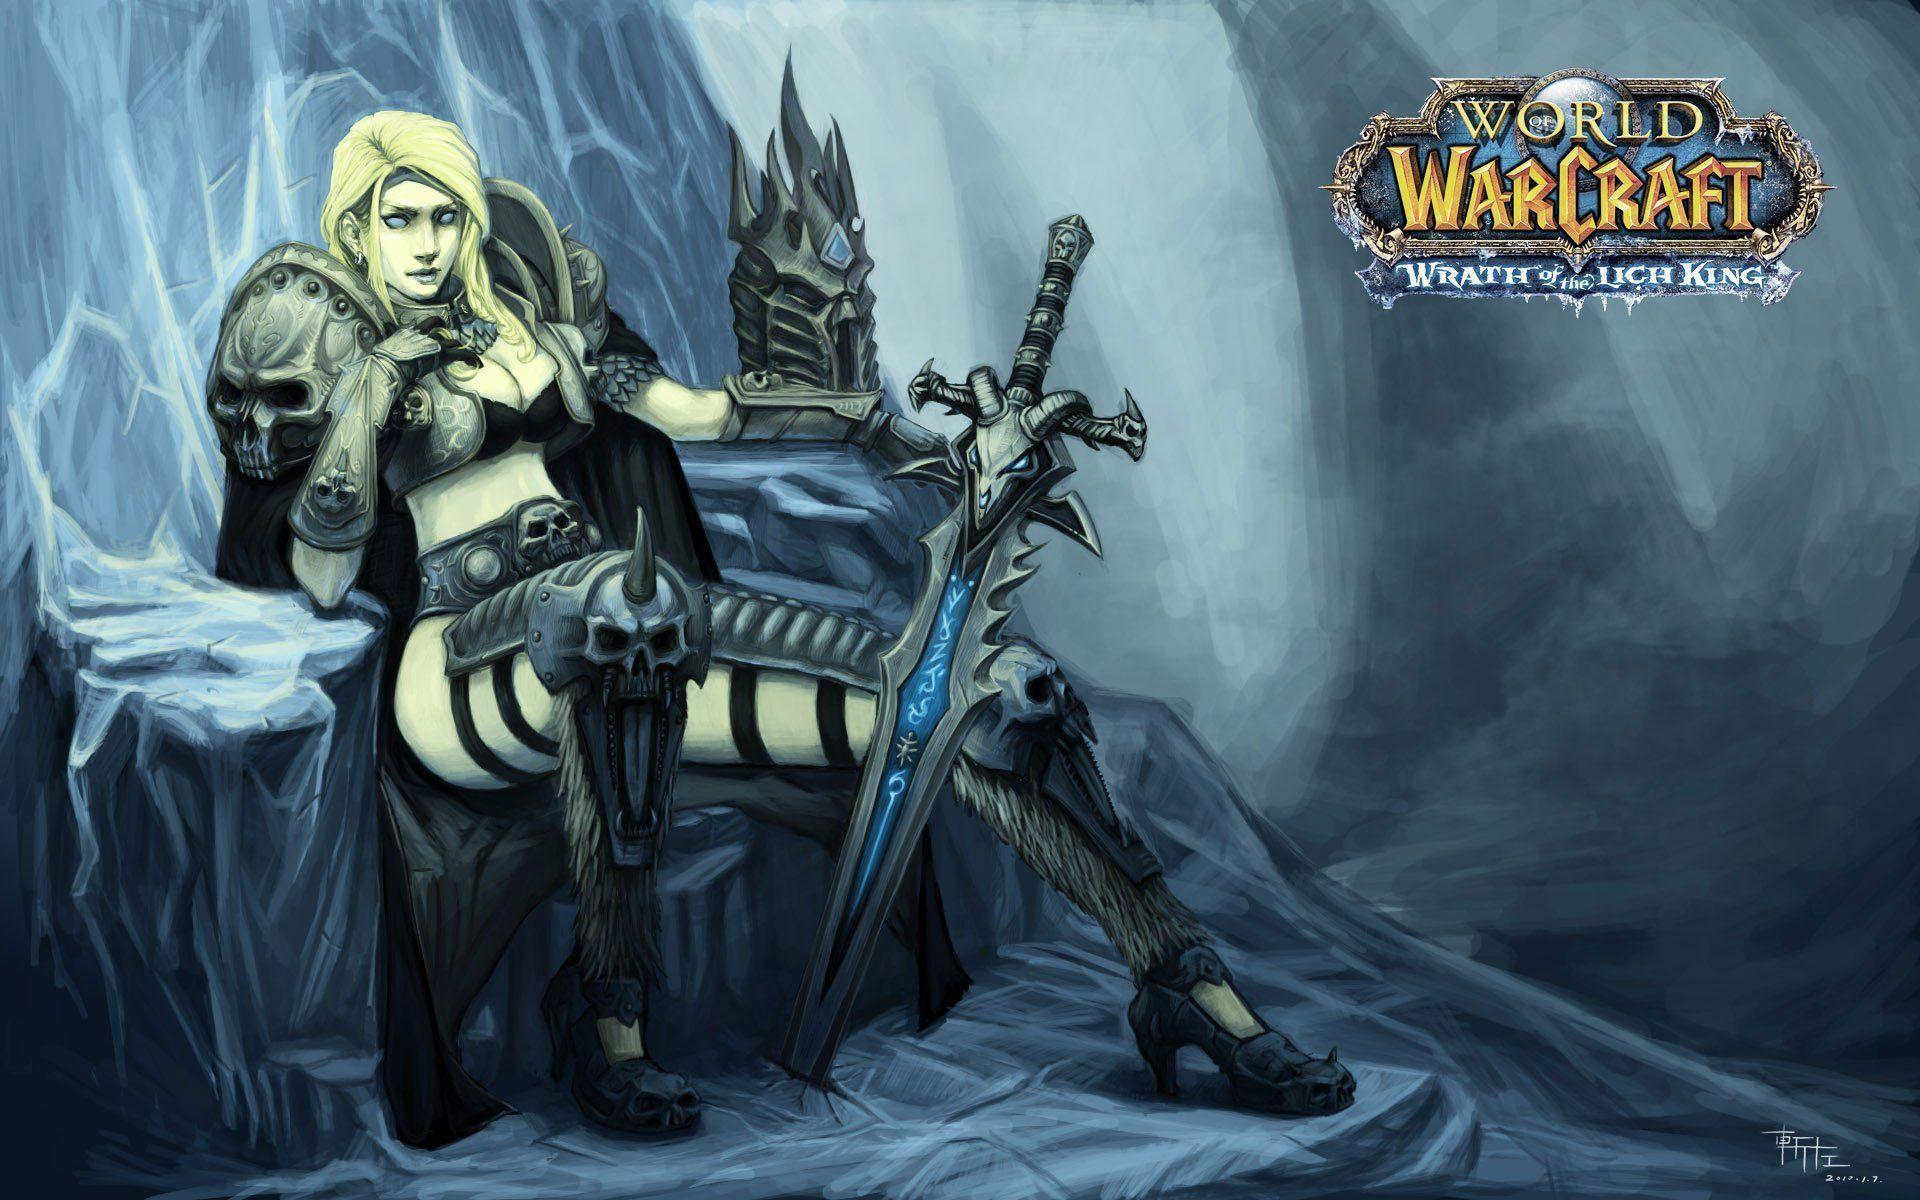 Jaina sexual image